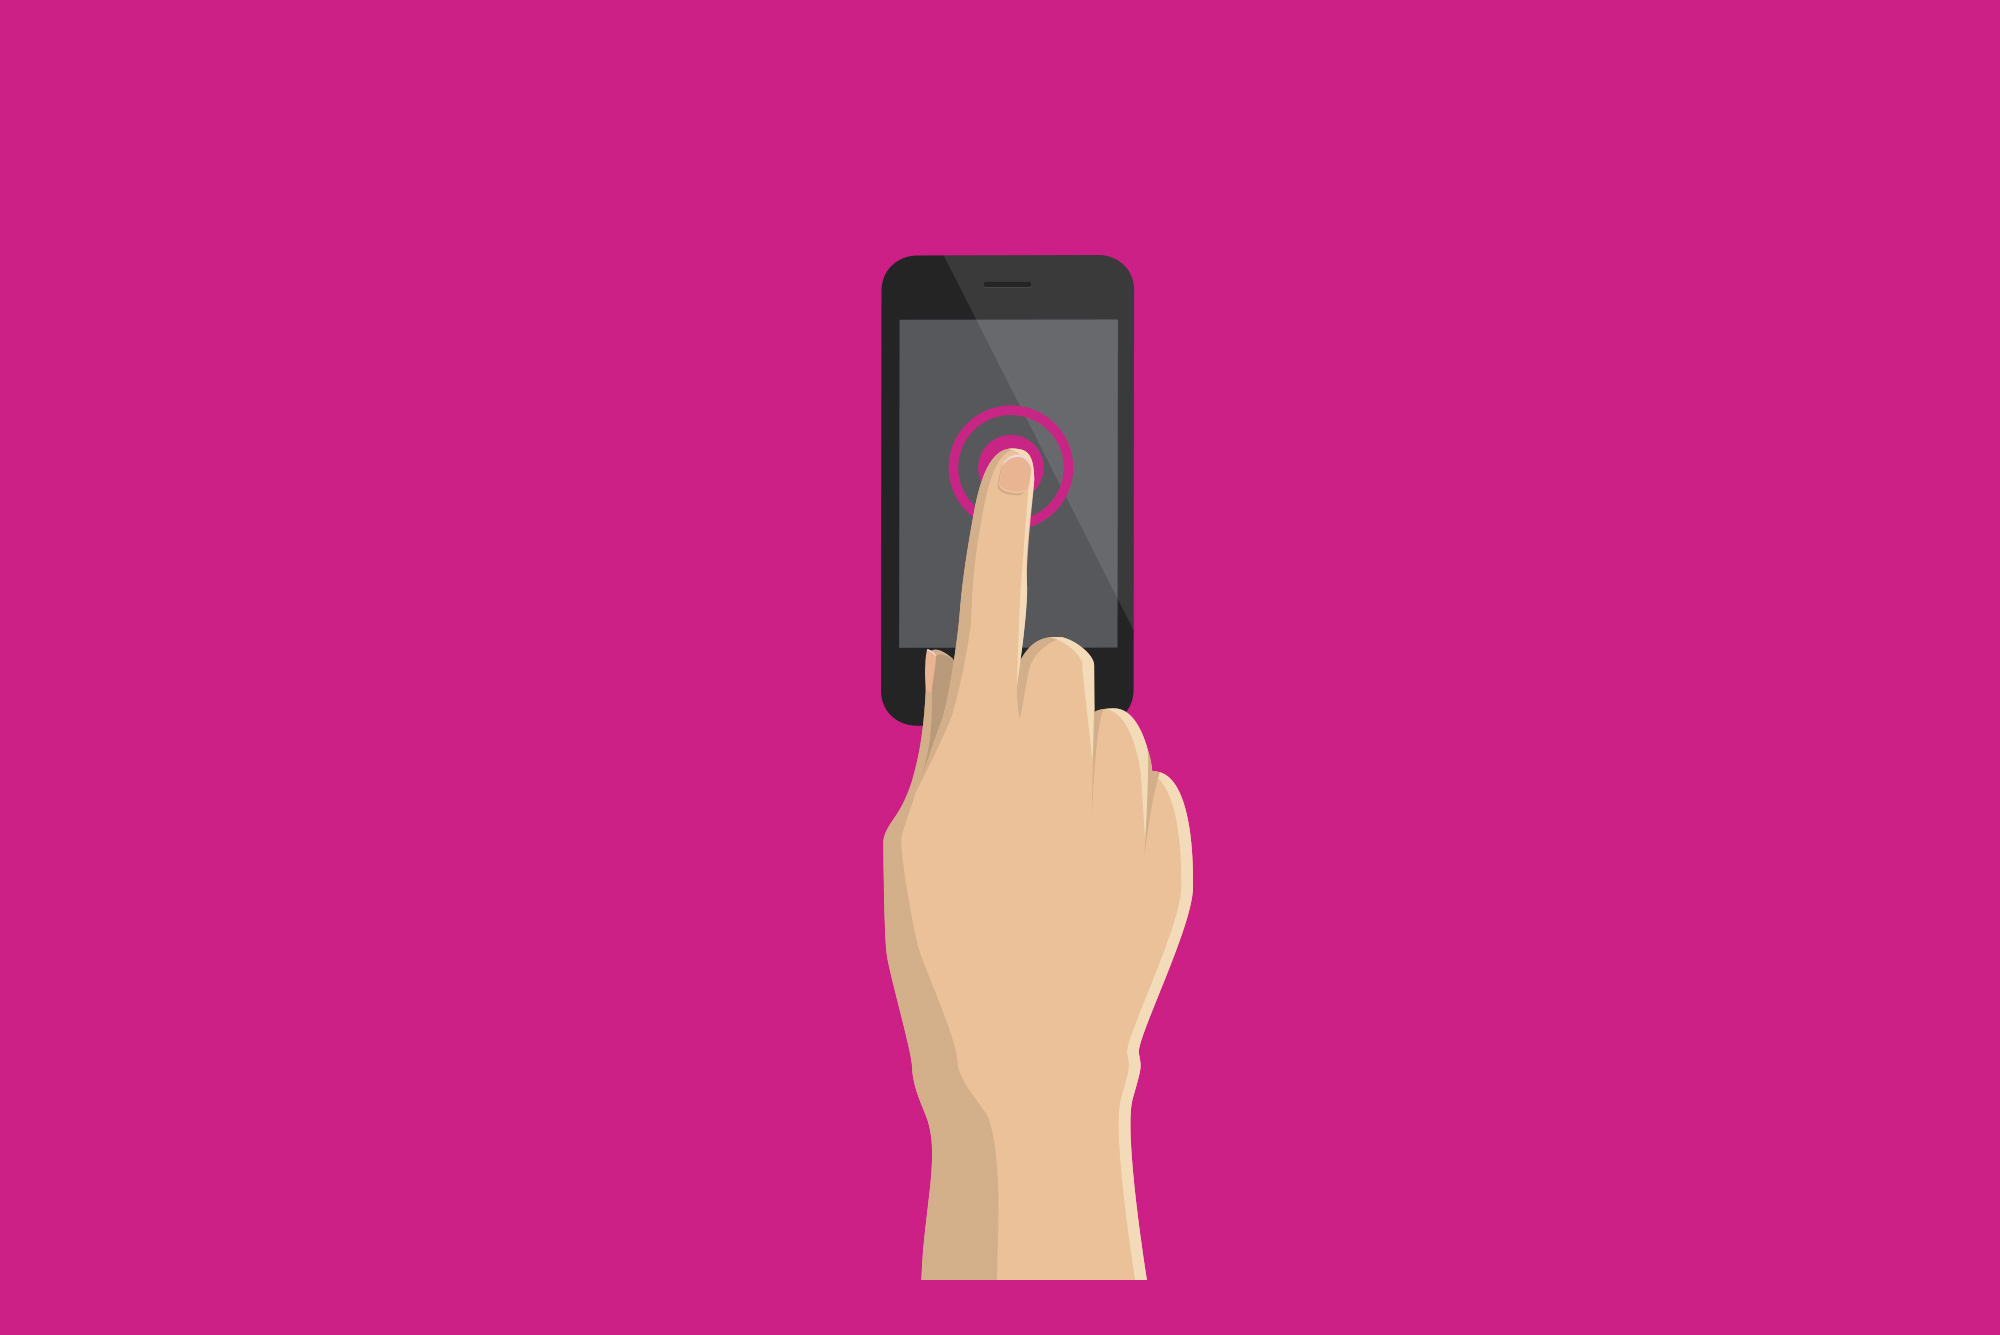 Finger touching phone screen - Mobile first must become mobile only